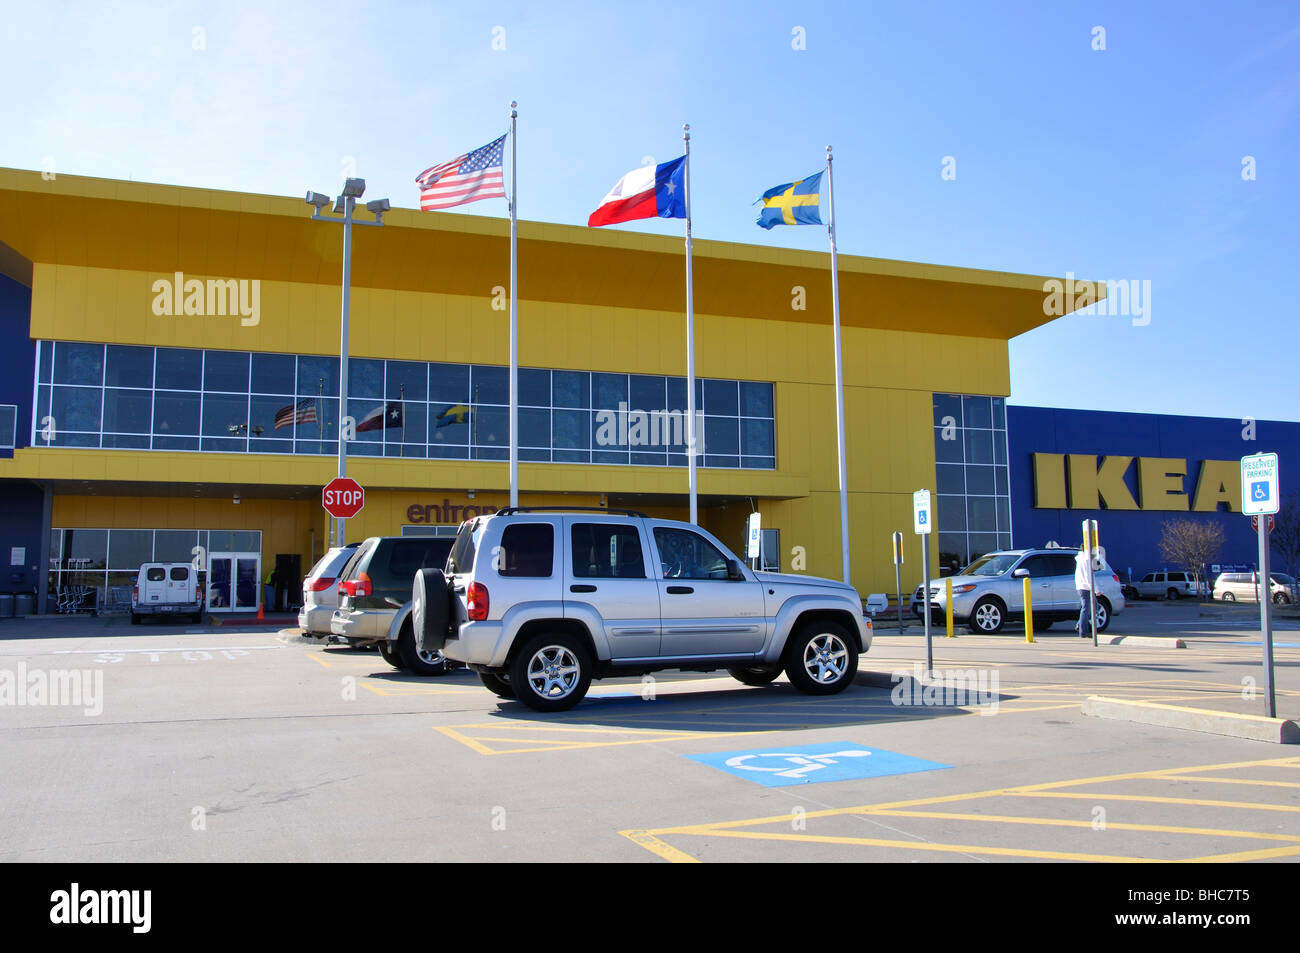 ikea store frisco texas usa stock photo 27929109 alamy